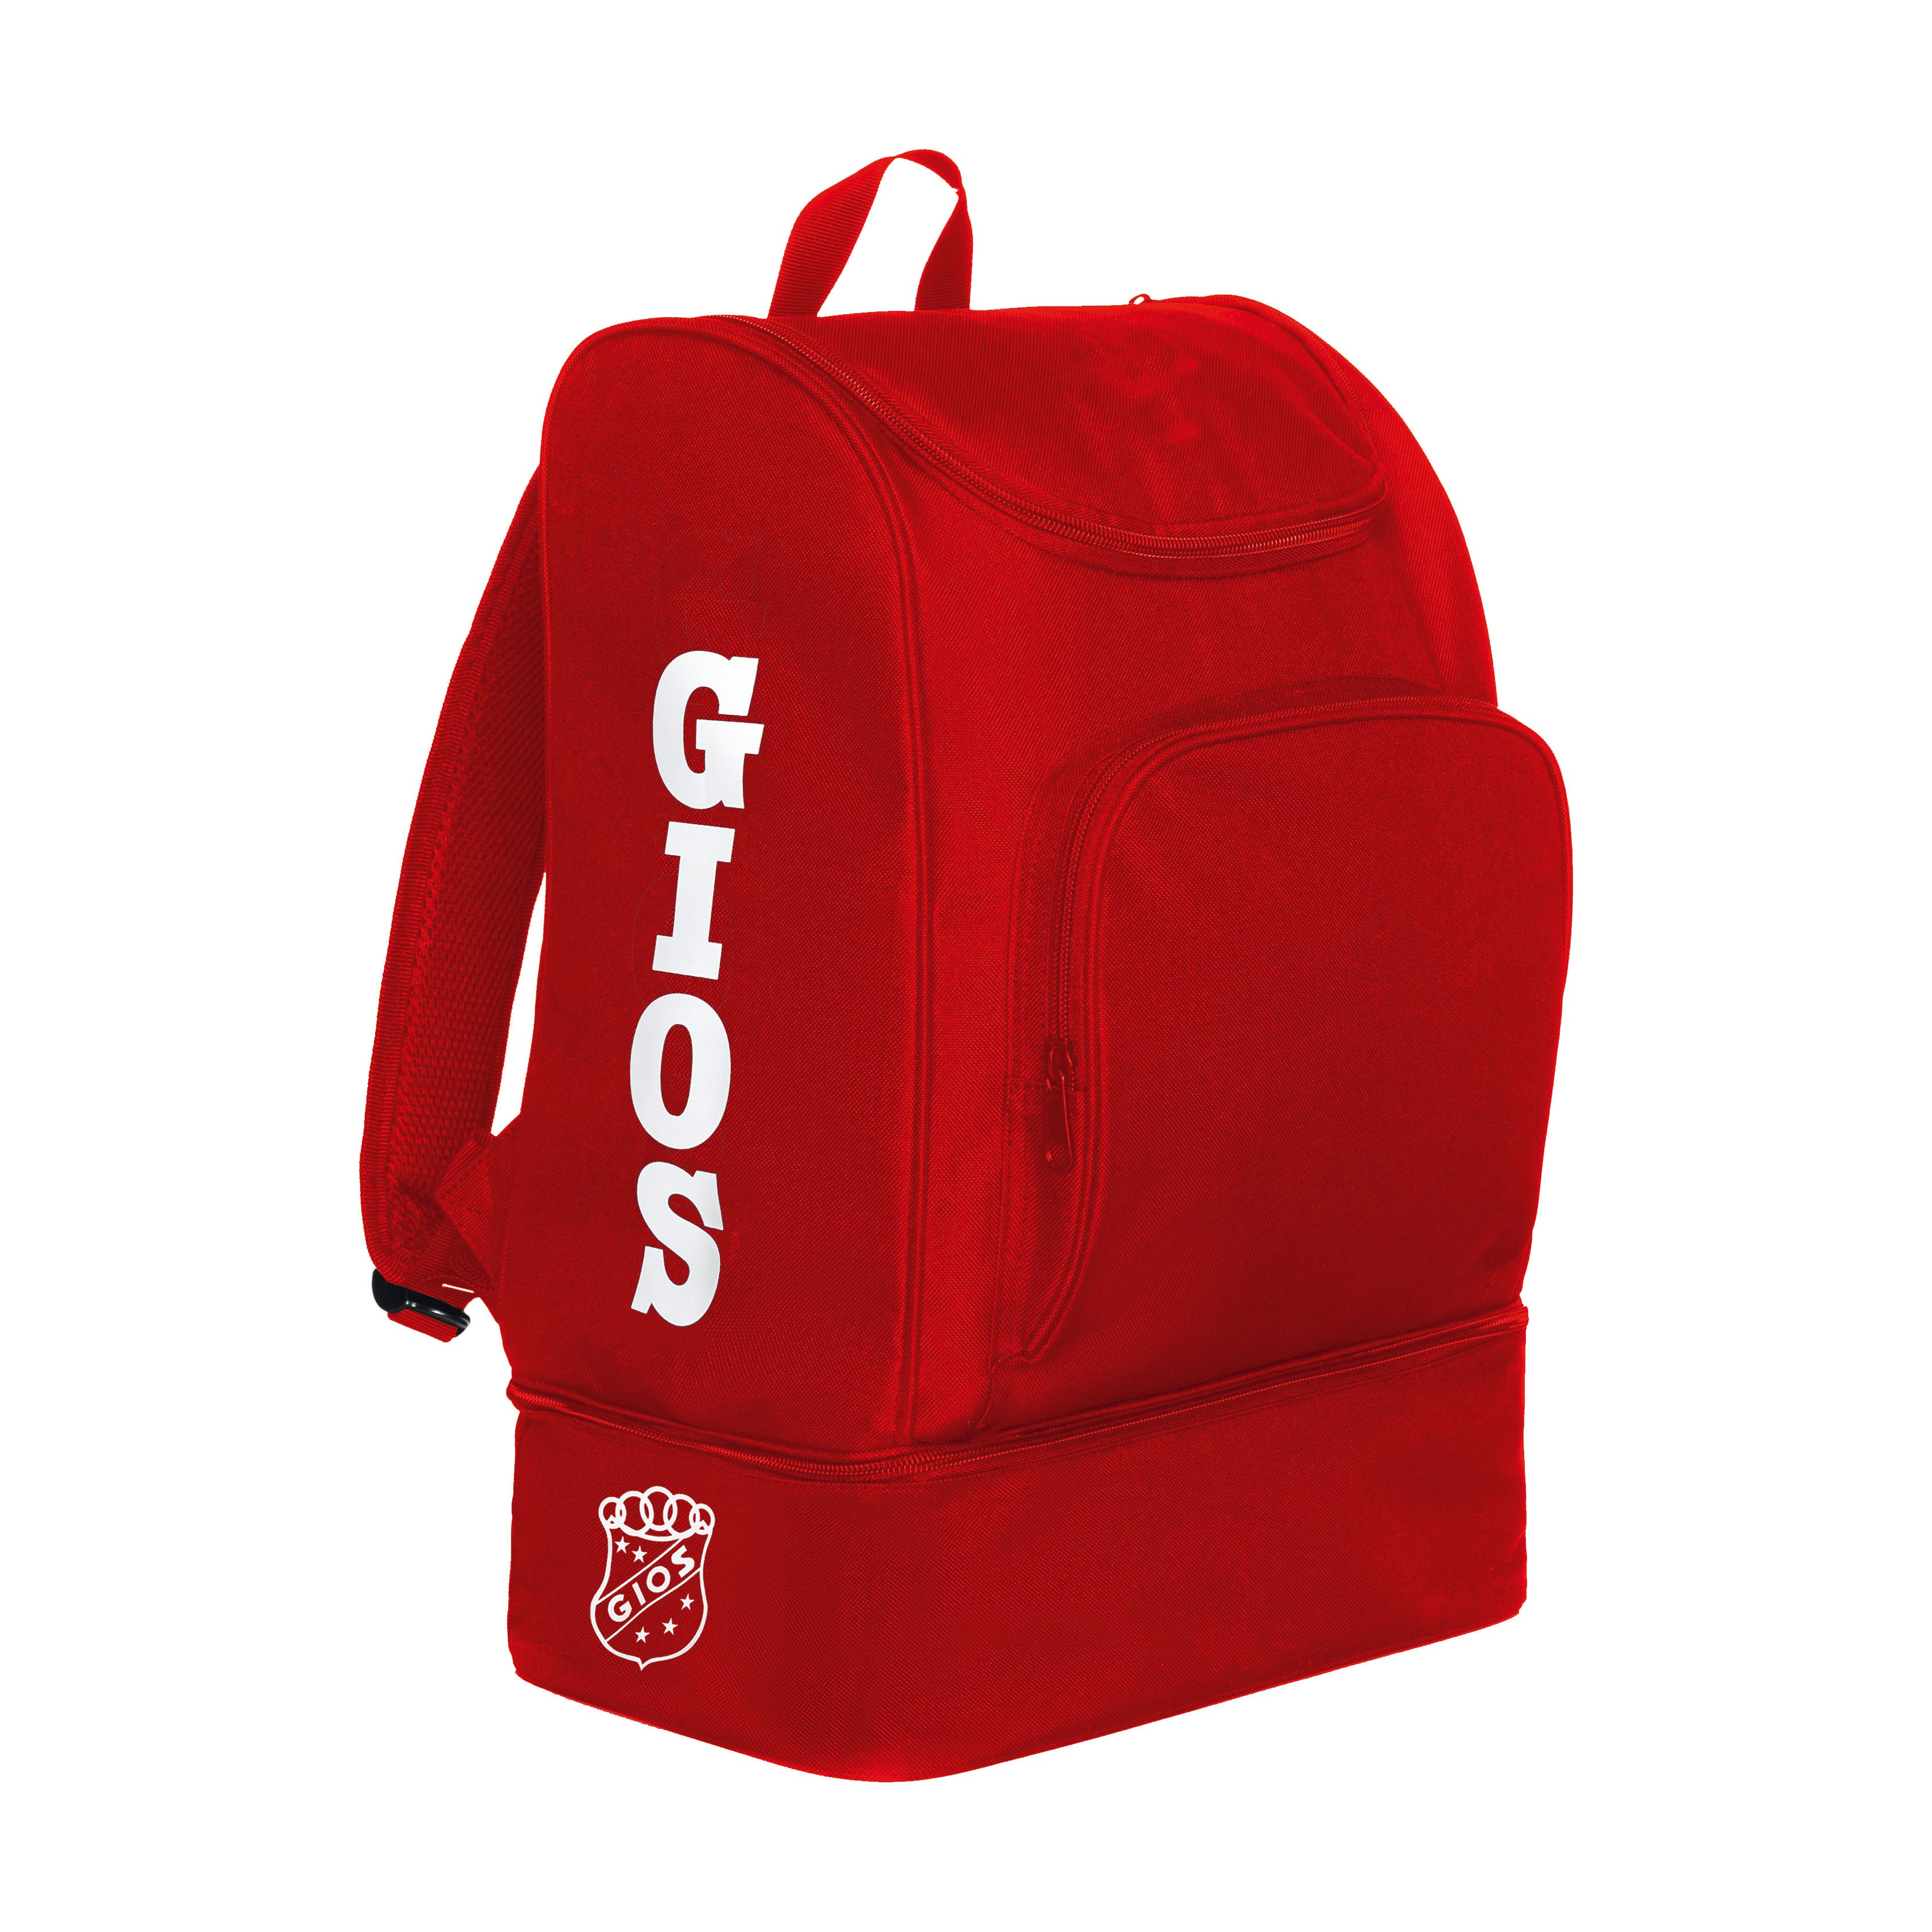 RUCKSACK WITH SHOE COMPARTIMENT / MOCHILA ZAPATILLERO RED